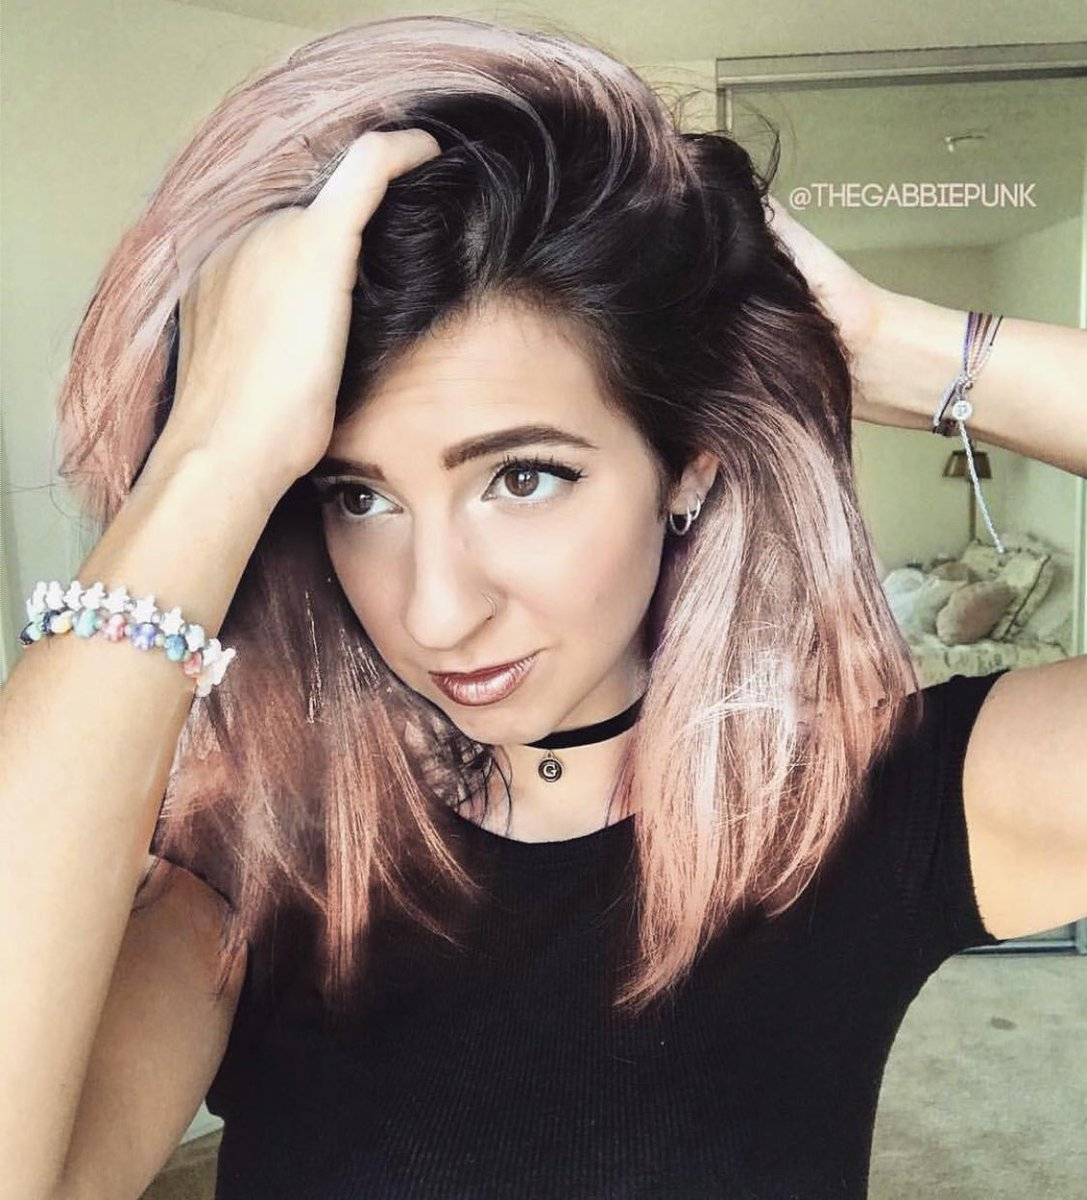 Gabbie On Twitter Should I Dye My Hair This Color Next